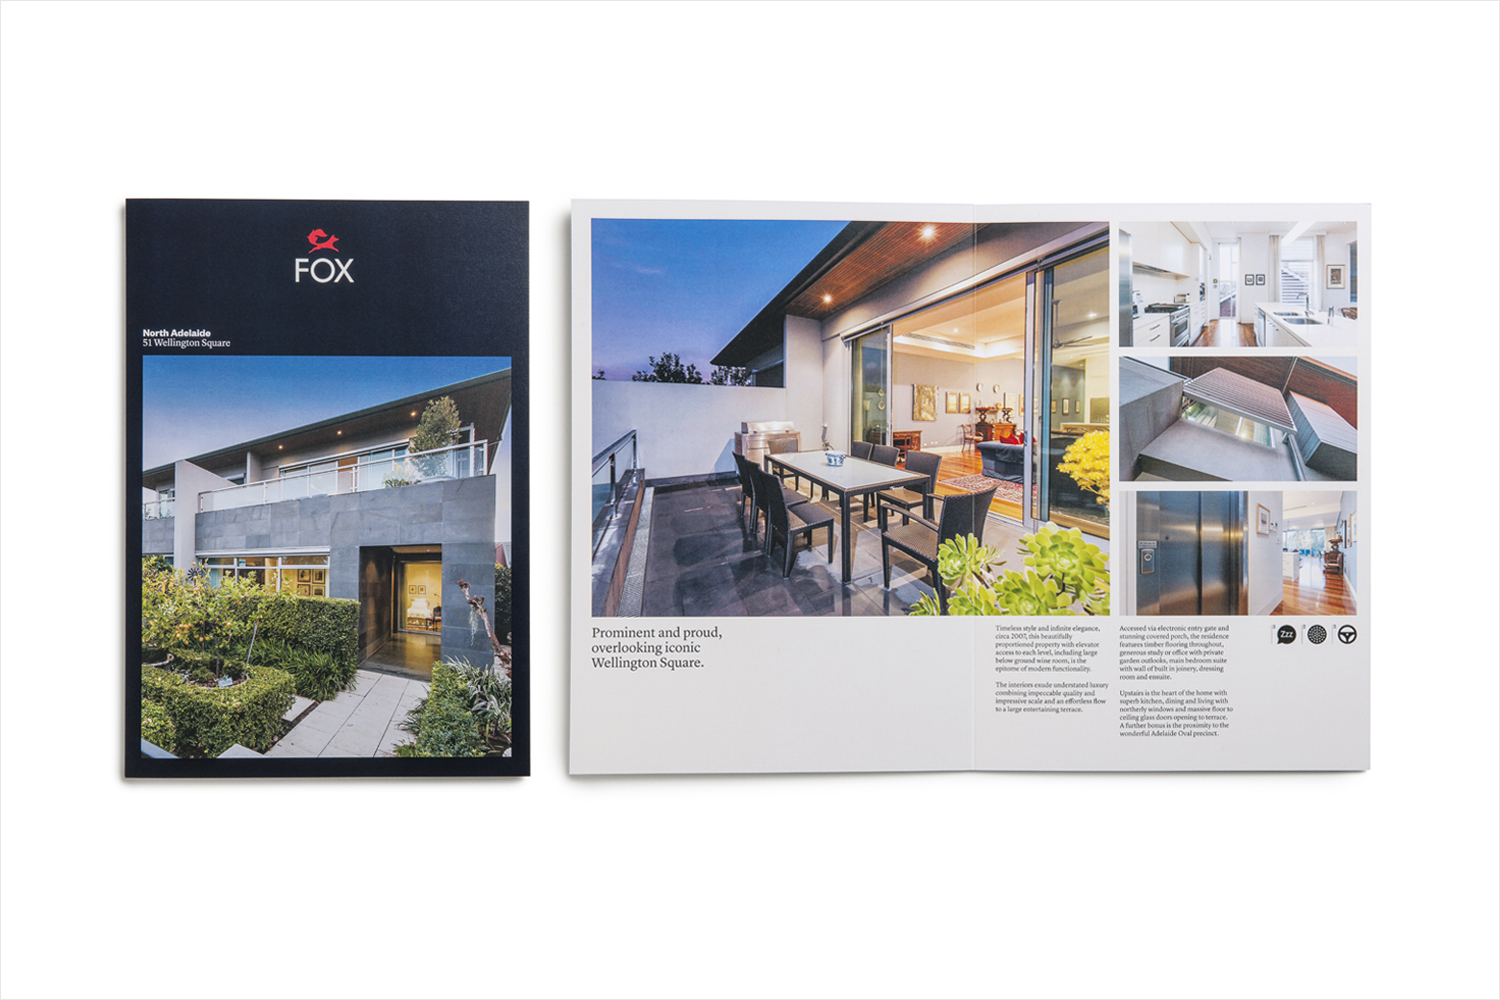 Brand identity and brochure for Fox Real Estate by Parallax Design, Australia